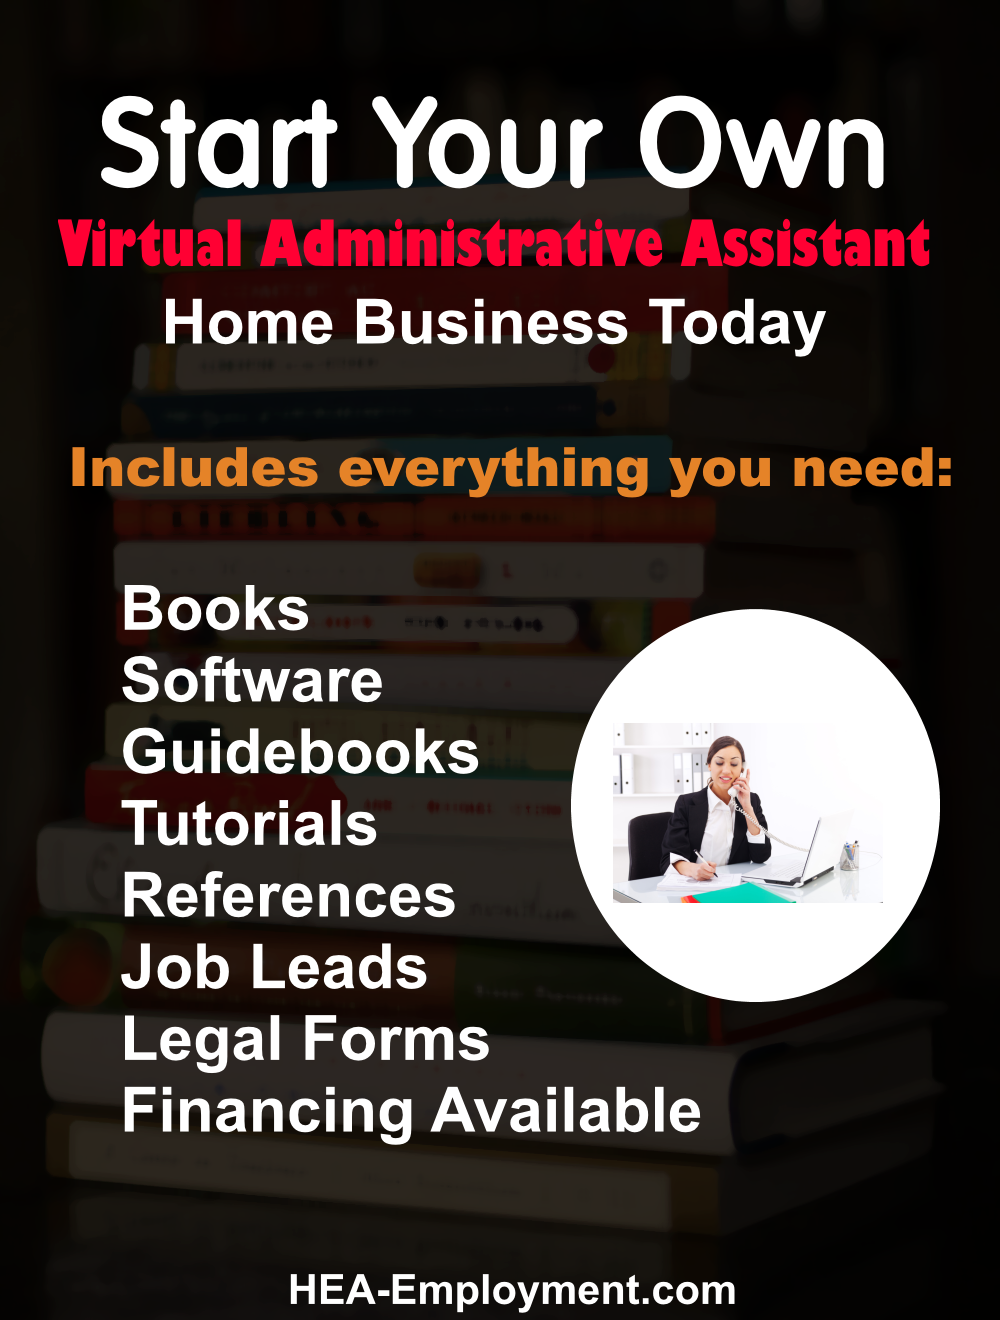 Start your own administrative and virtual assistant legitimate home based business. Fully equipped home business package with everything you need to get started. Productivity software, tutorials, guidebooks, references, manuals, tax advice and legal forms are included with each kit. Be your own boss!